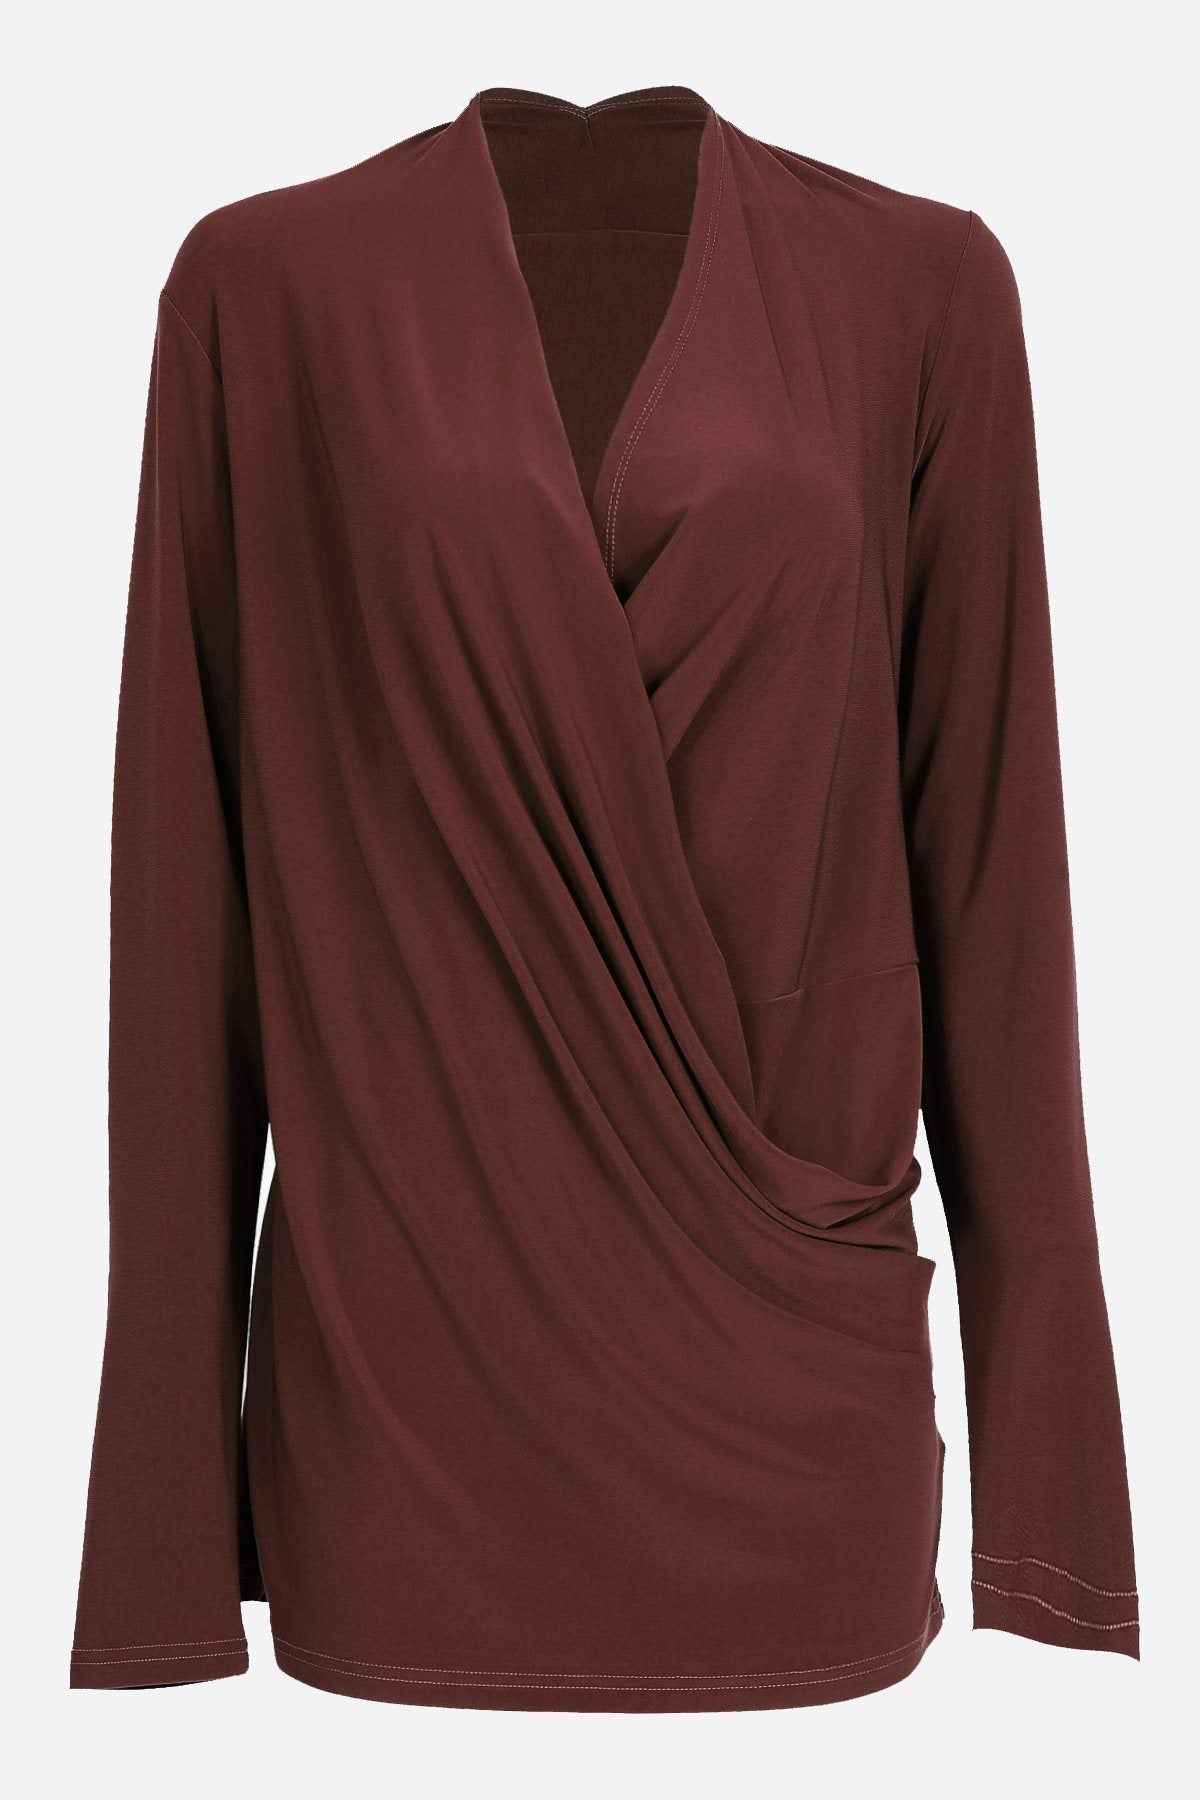 Long Sleeve Crossover Top chestnut